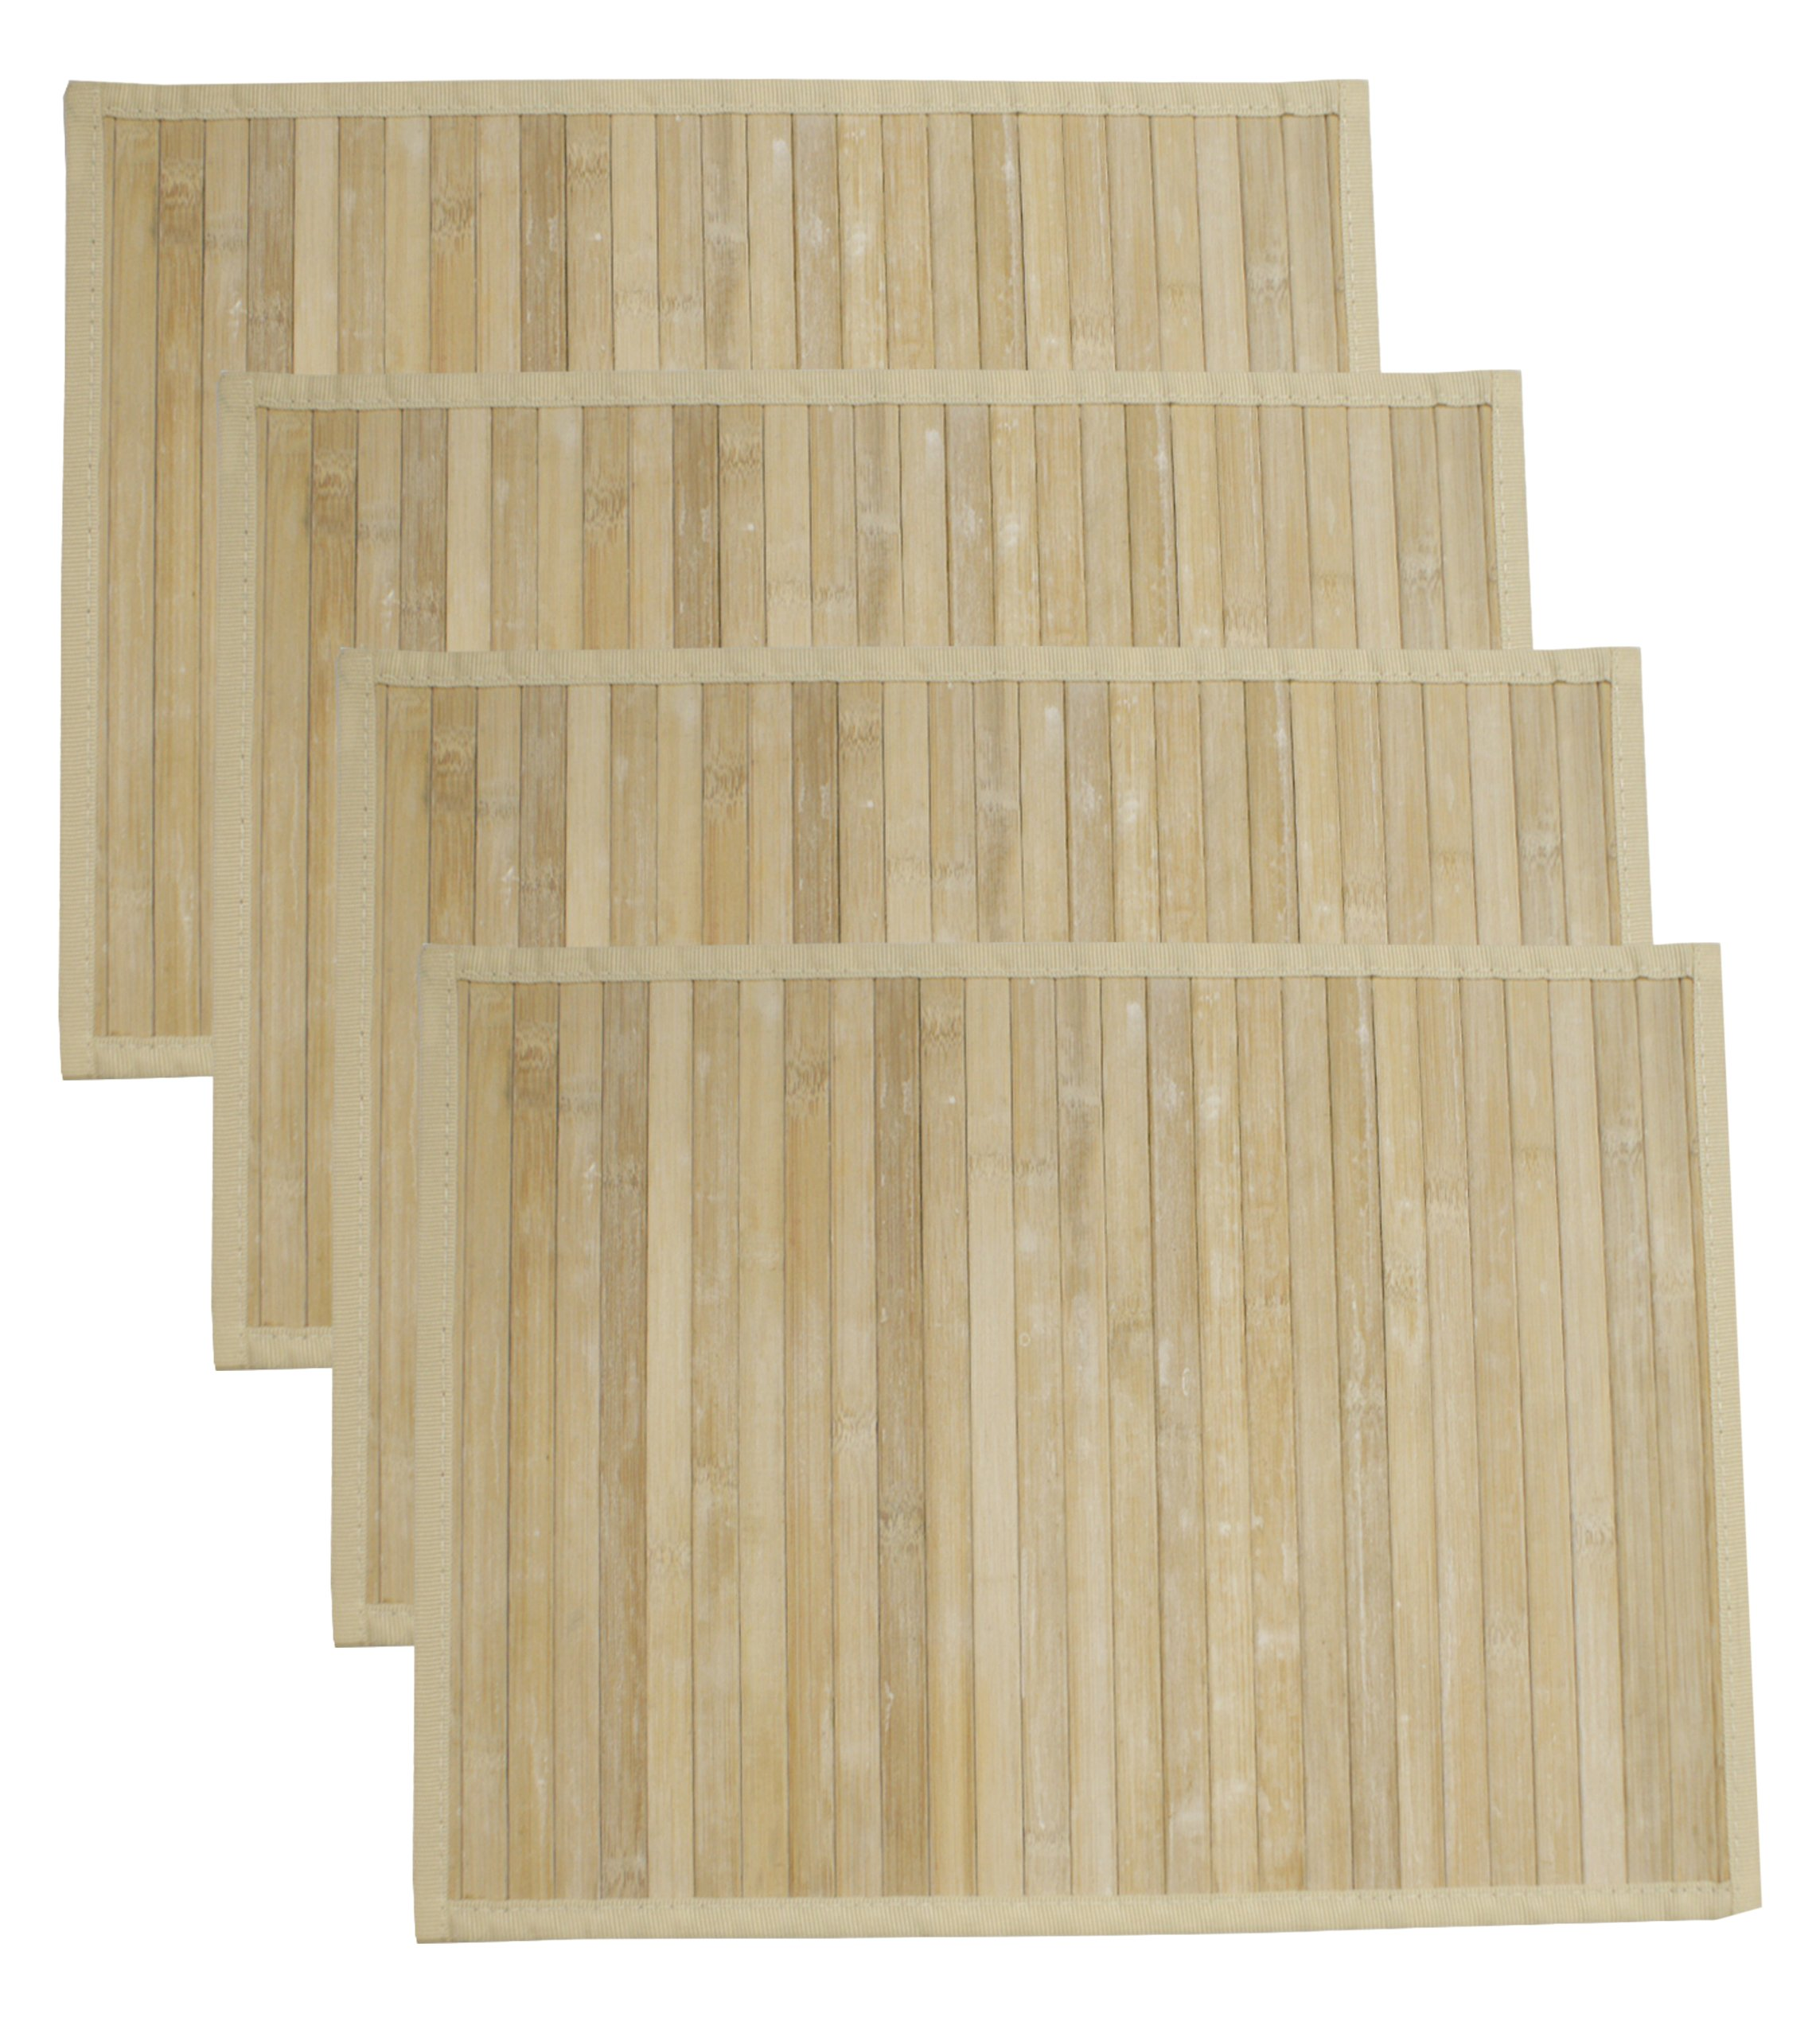 HOTEL 08402 Bamboo 4 Pack Placemat Set,White,12x18